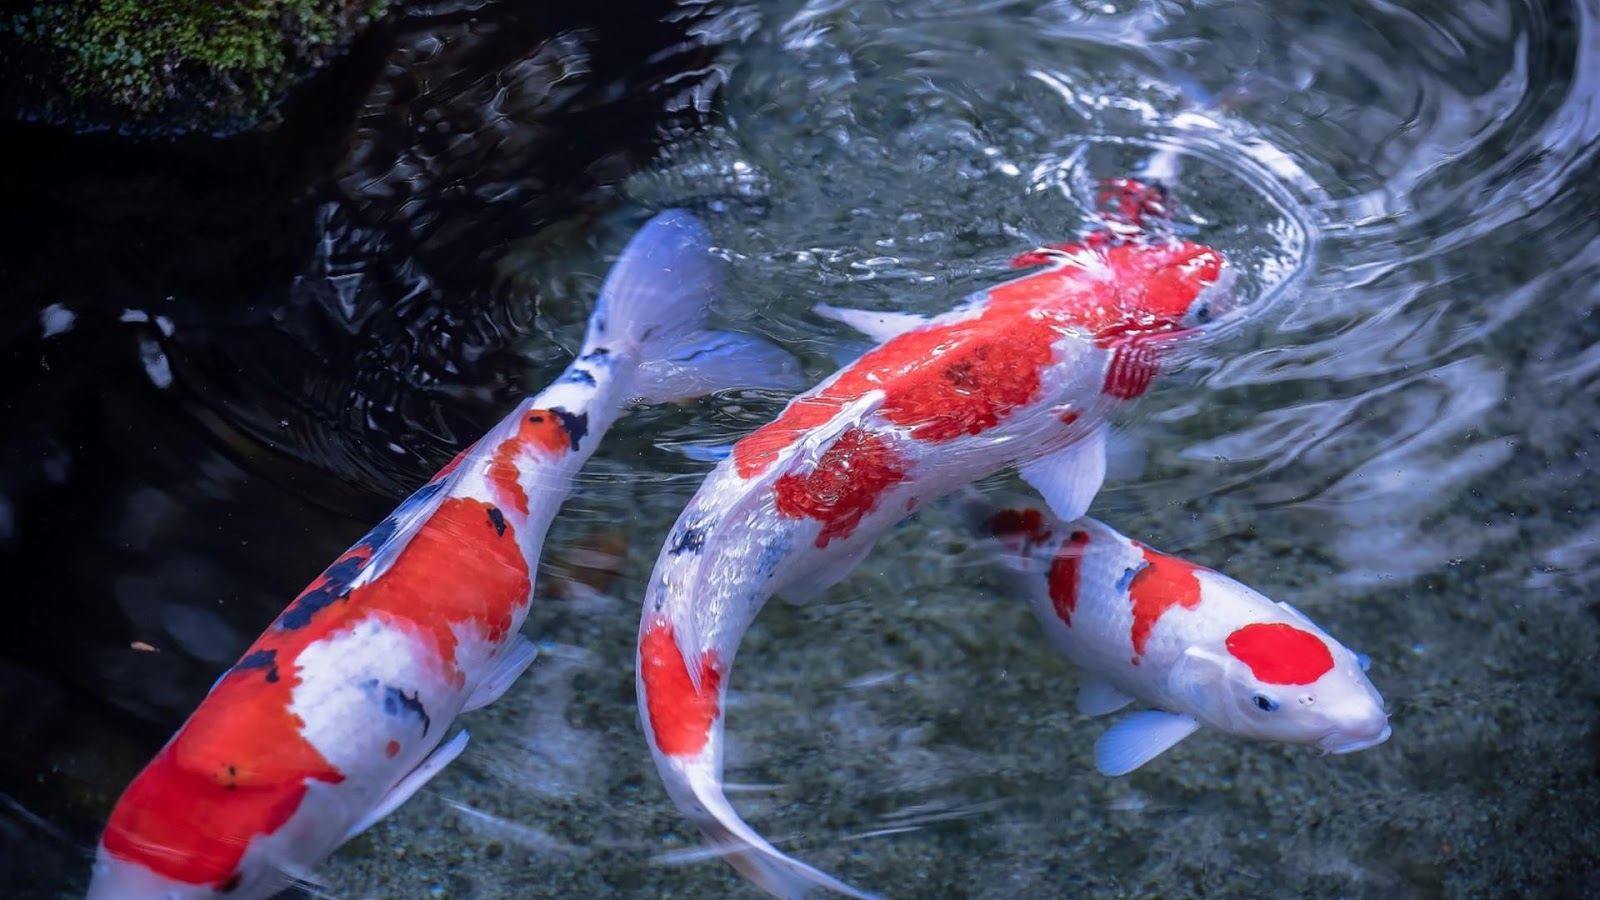 Legends of the koi fish the costa rican times for Live to fish